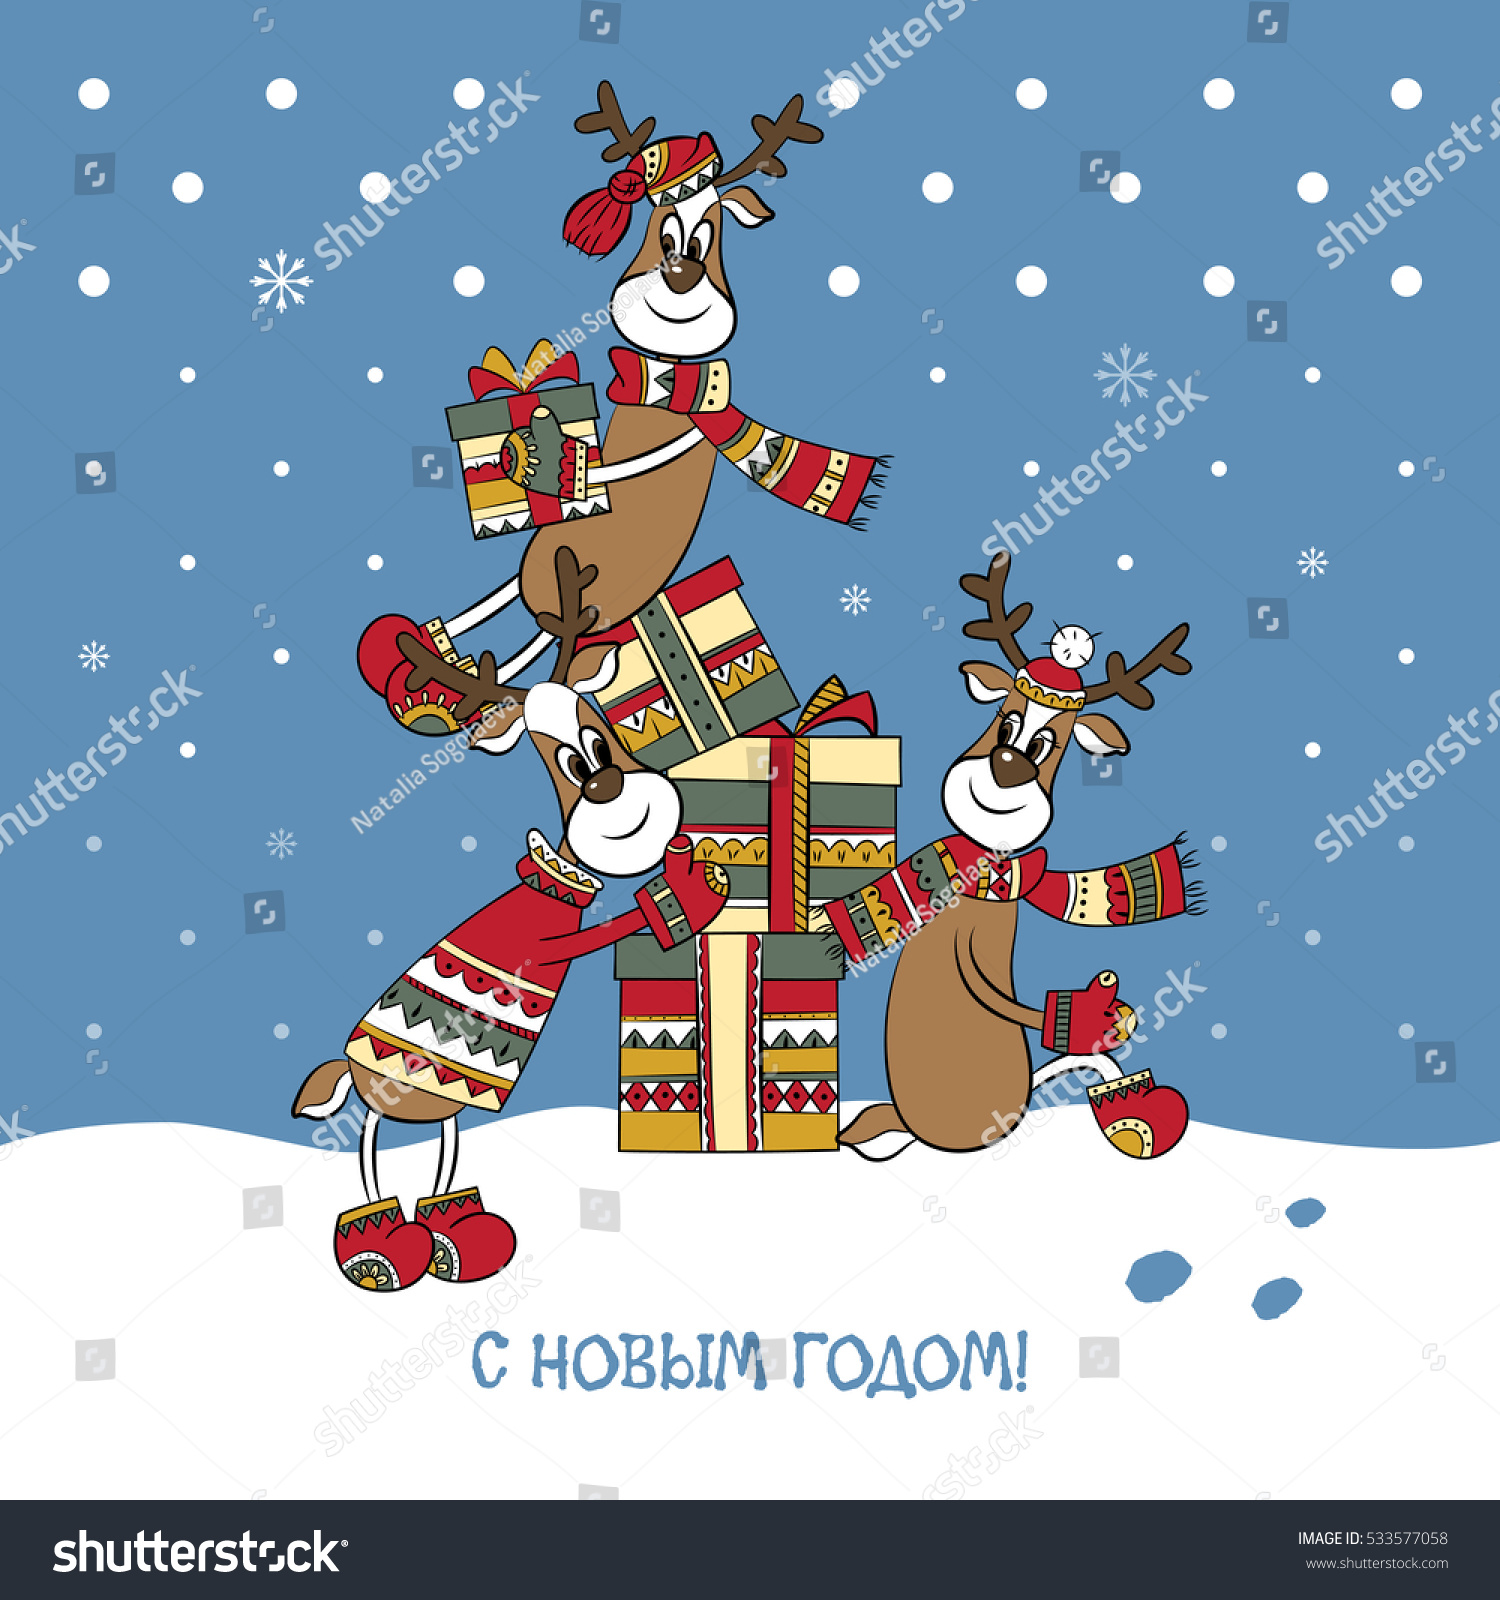 merry christmas card with three deers and russian text happy new year - Russian Merry Christmas